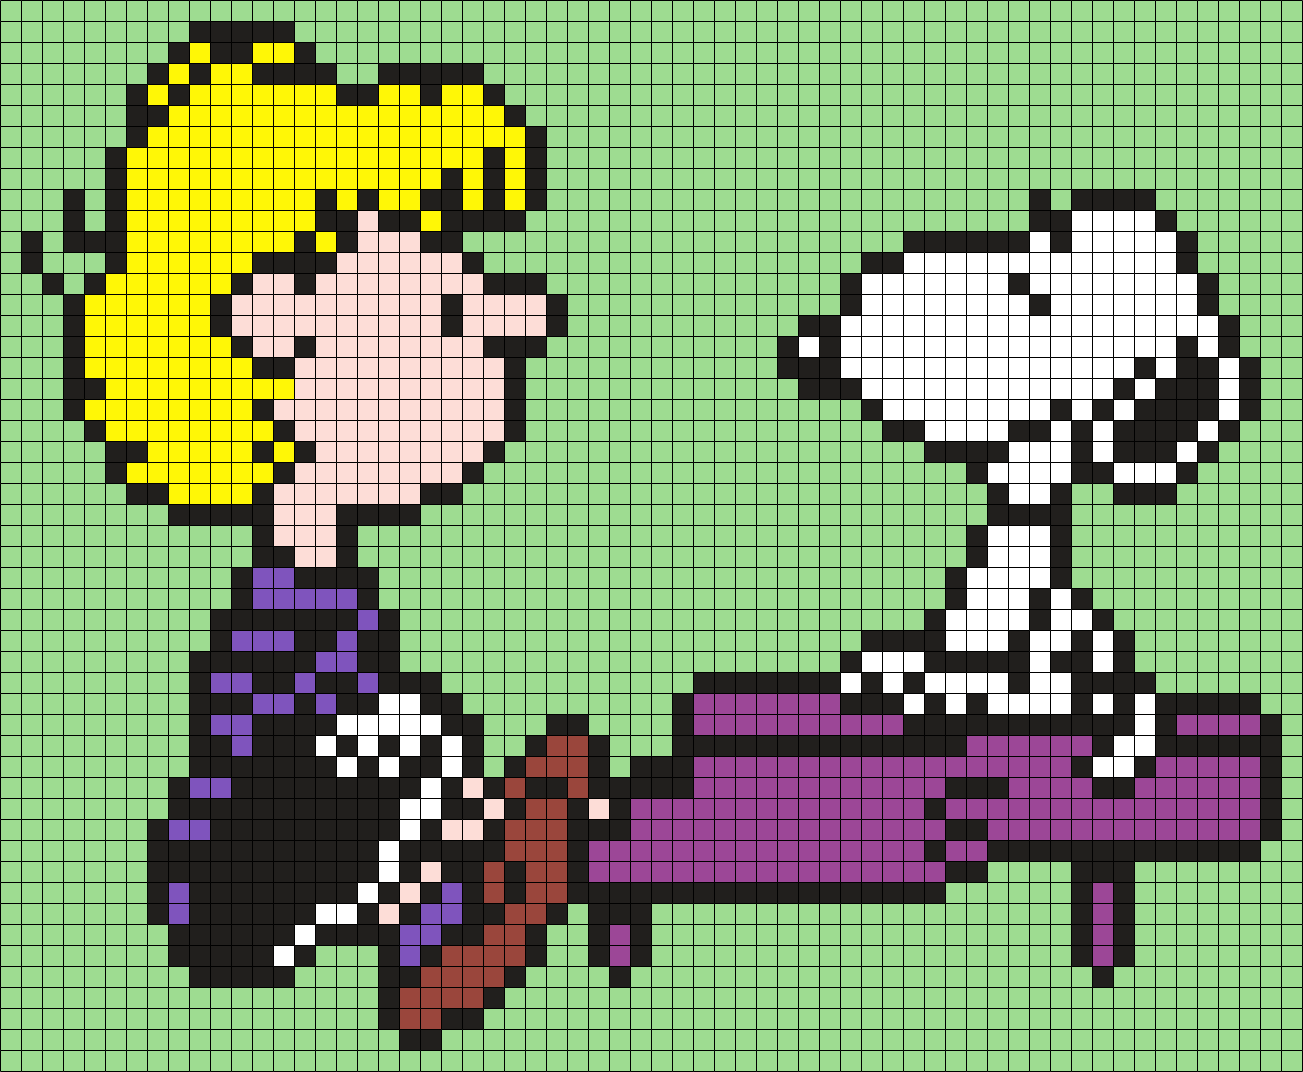 Schroeder And Snoopy From Snoopy And The Peanuts Gang (Square) Perler Bead Pattern / Bead Sprite